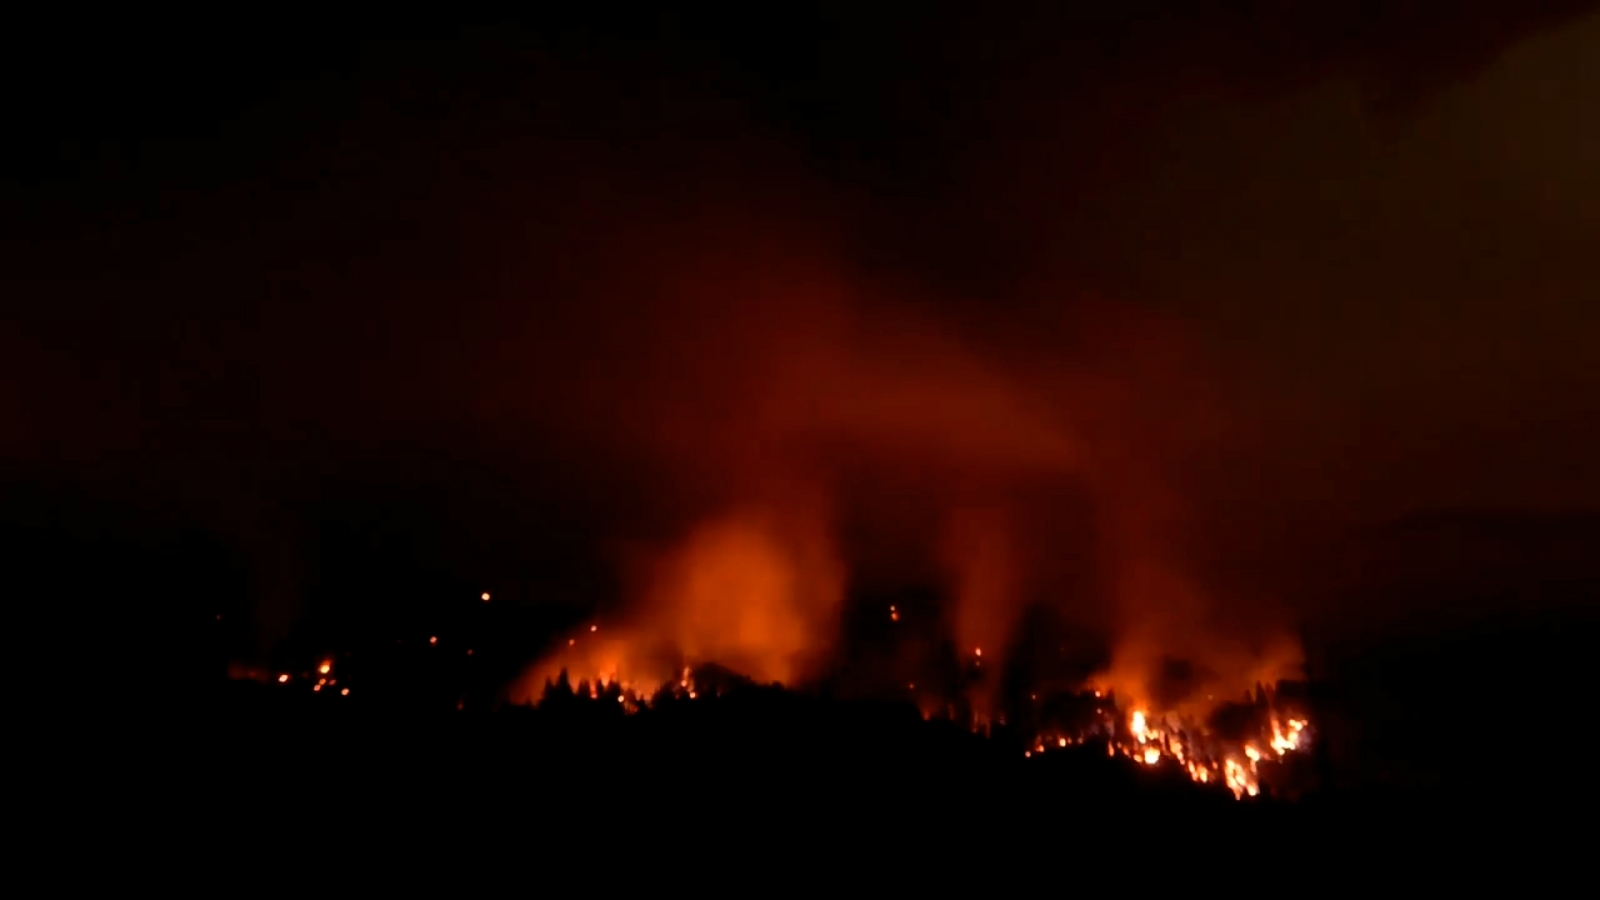 Oregon Eagle Creek Wildfire Spreads To 4,800 Acres